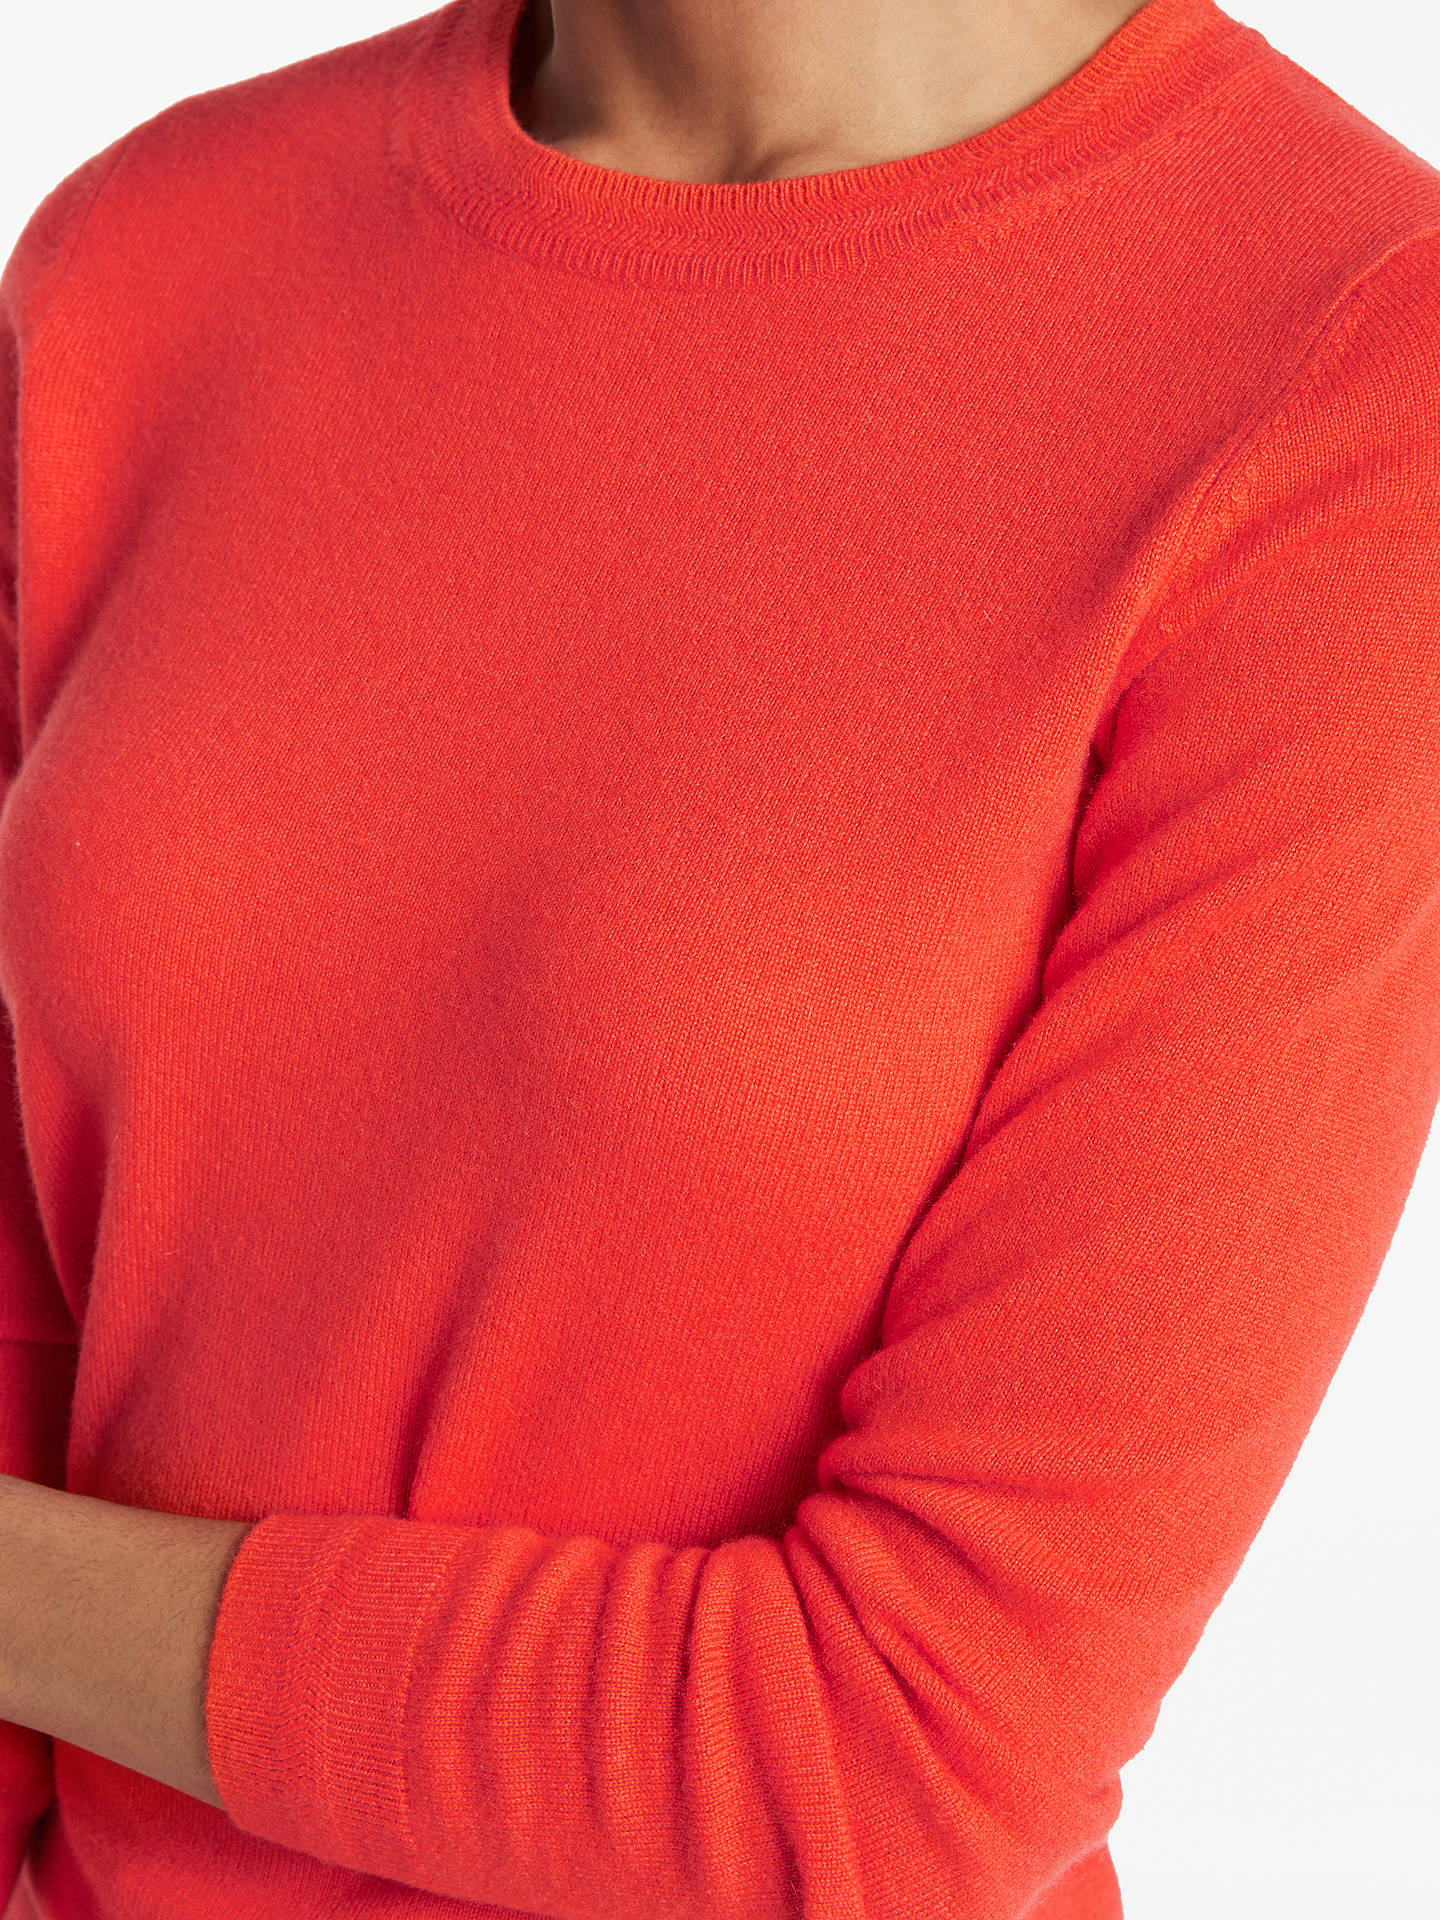 BuyBoden Cashmere Crew Neck Jumper, Red Pop, XS Online at johnlewis.com